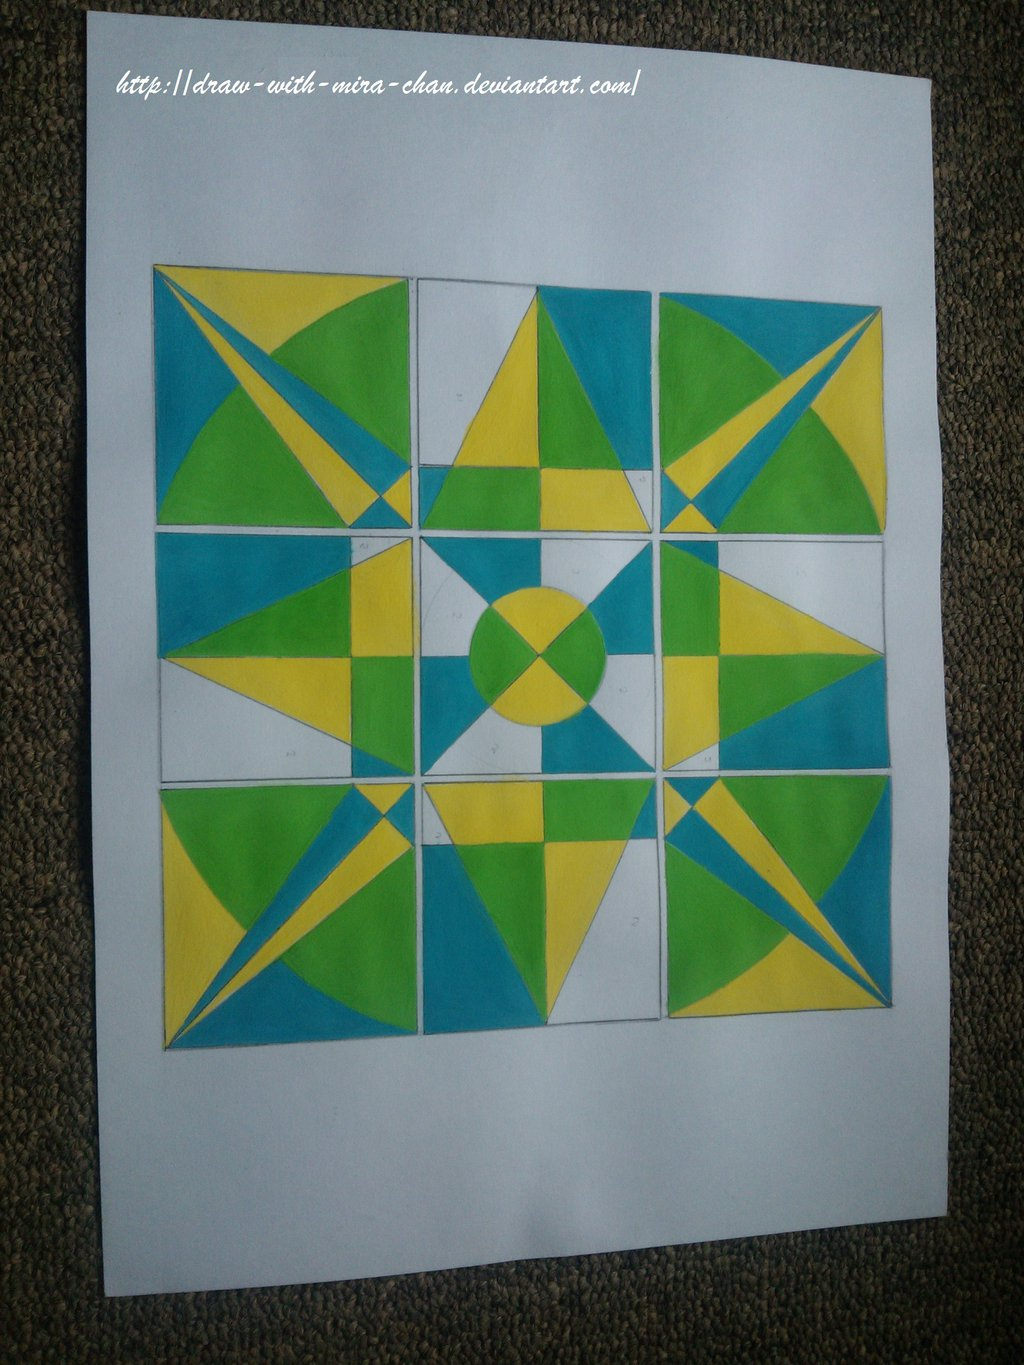 The Best Free Geometric Shapes Drawing Images Download